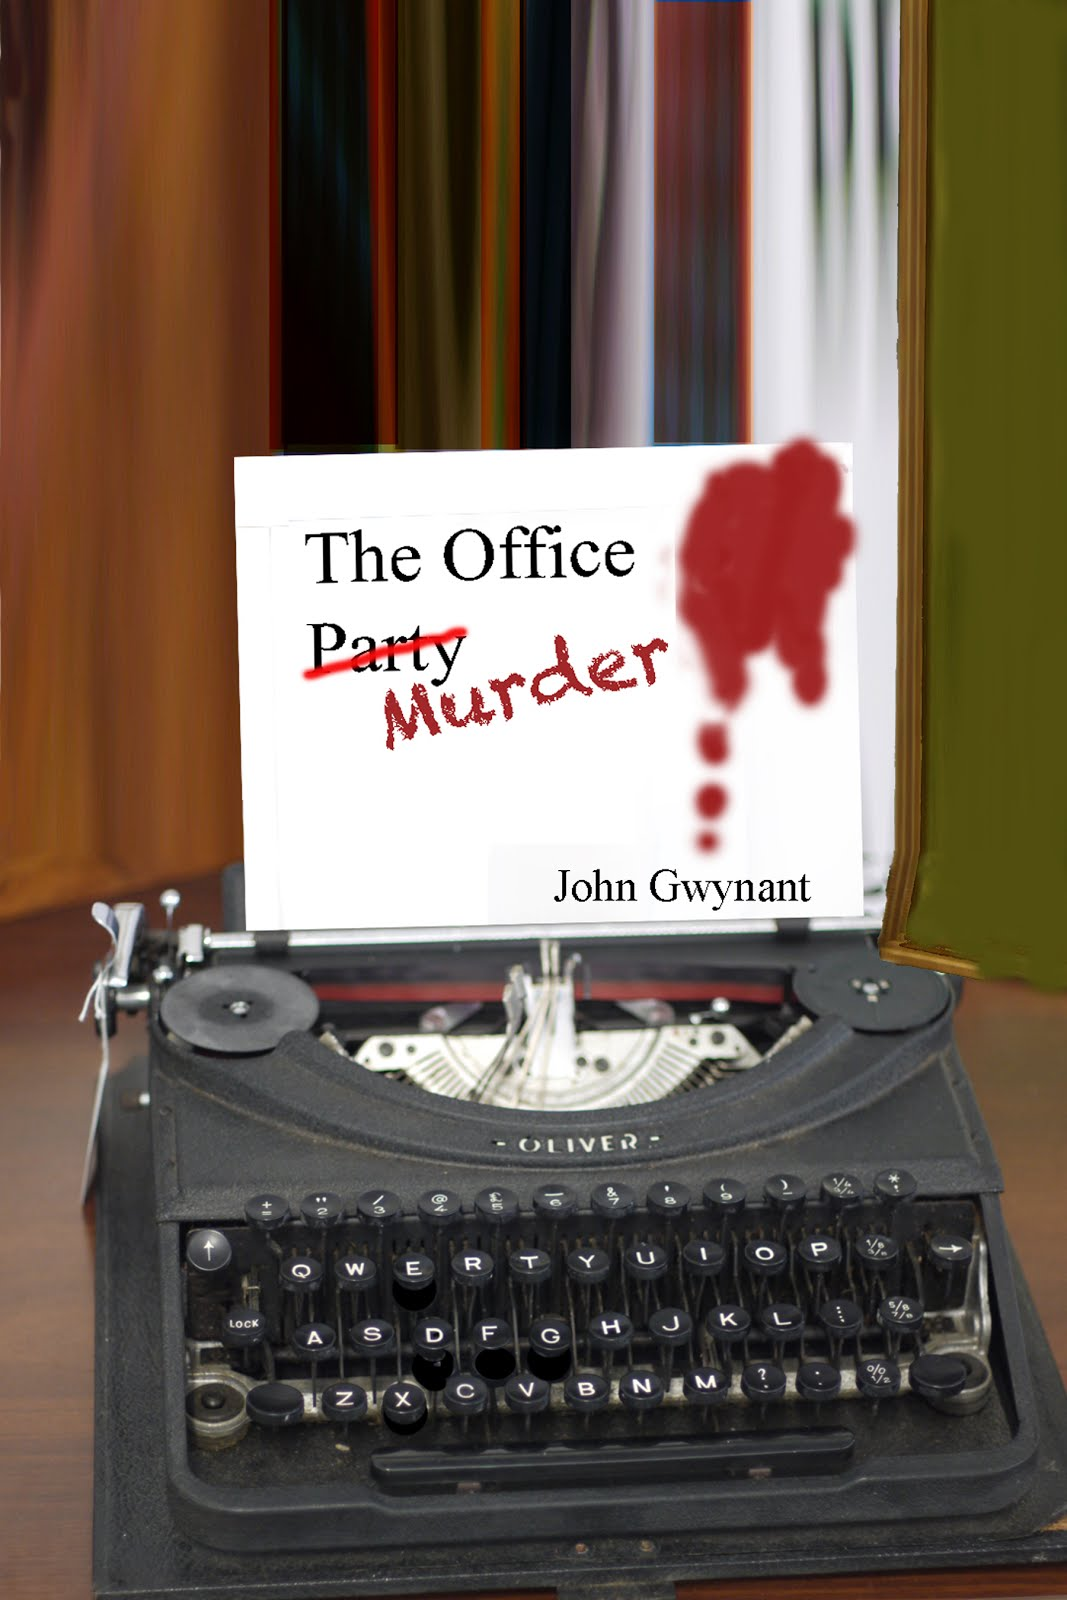 The Office Murder